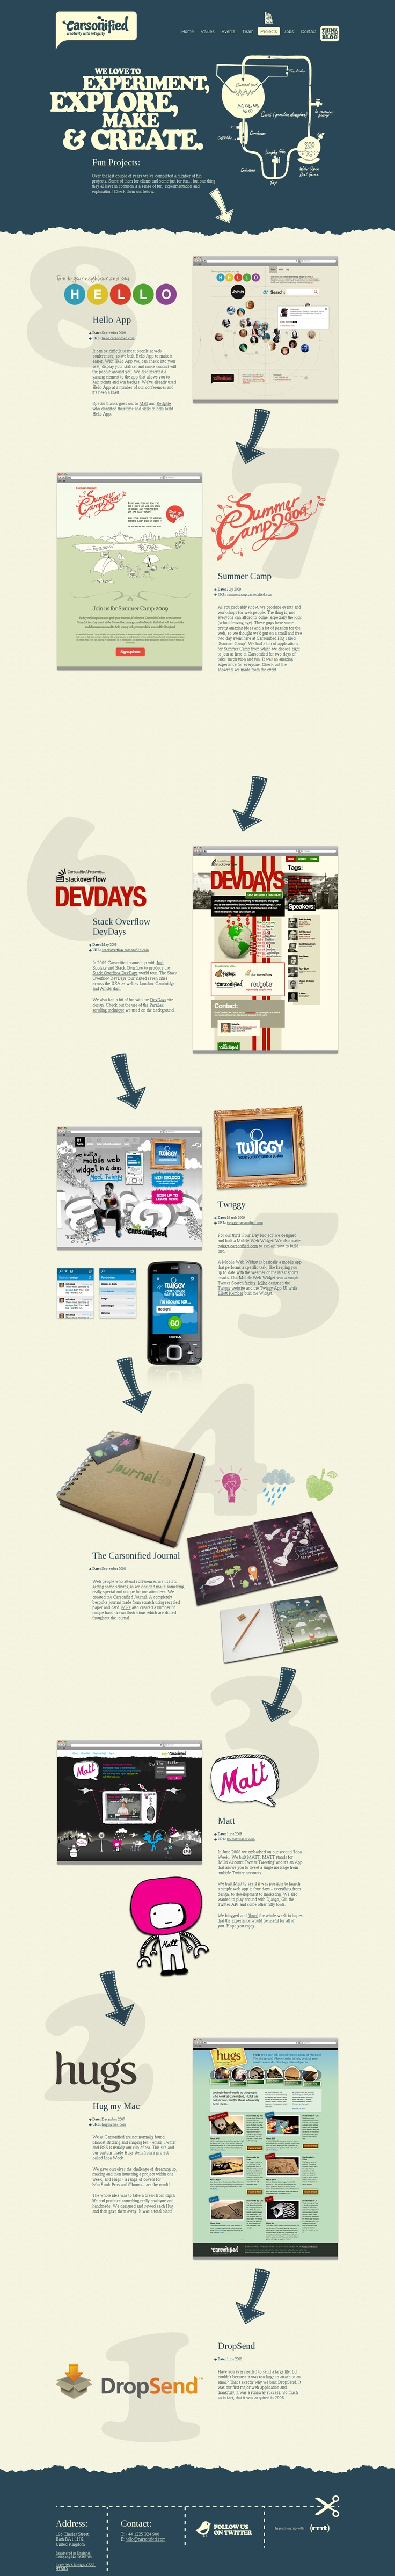 carsonified.com: projects section. Web Design